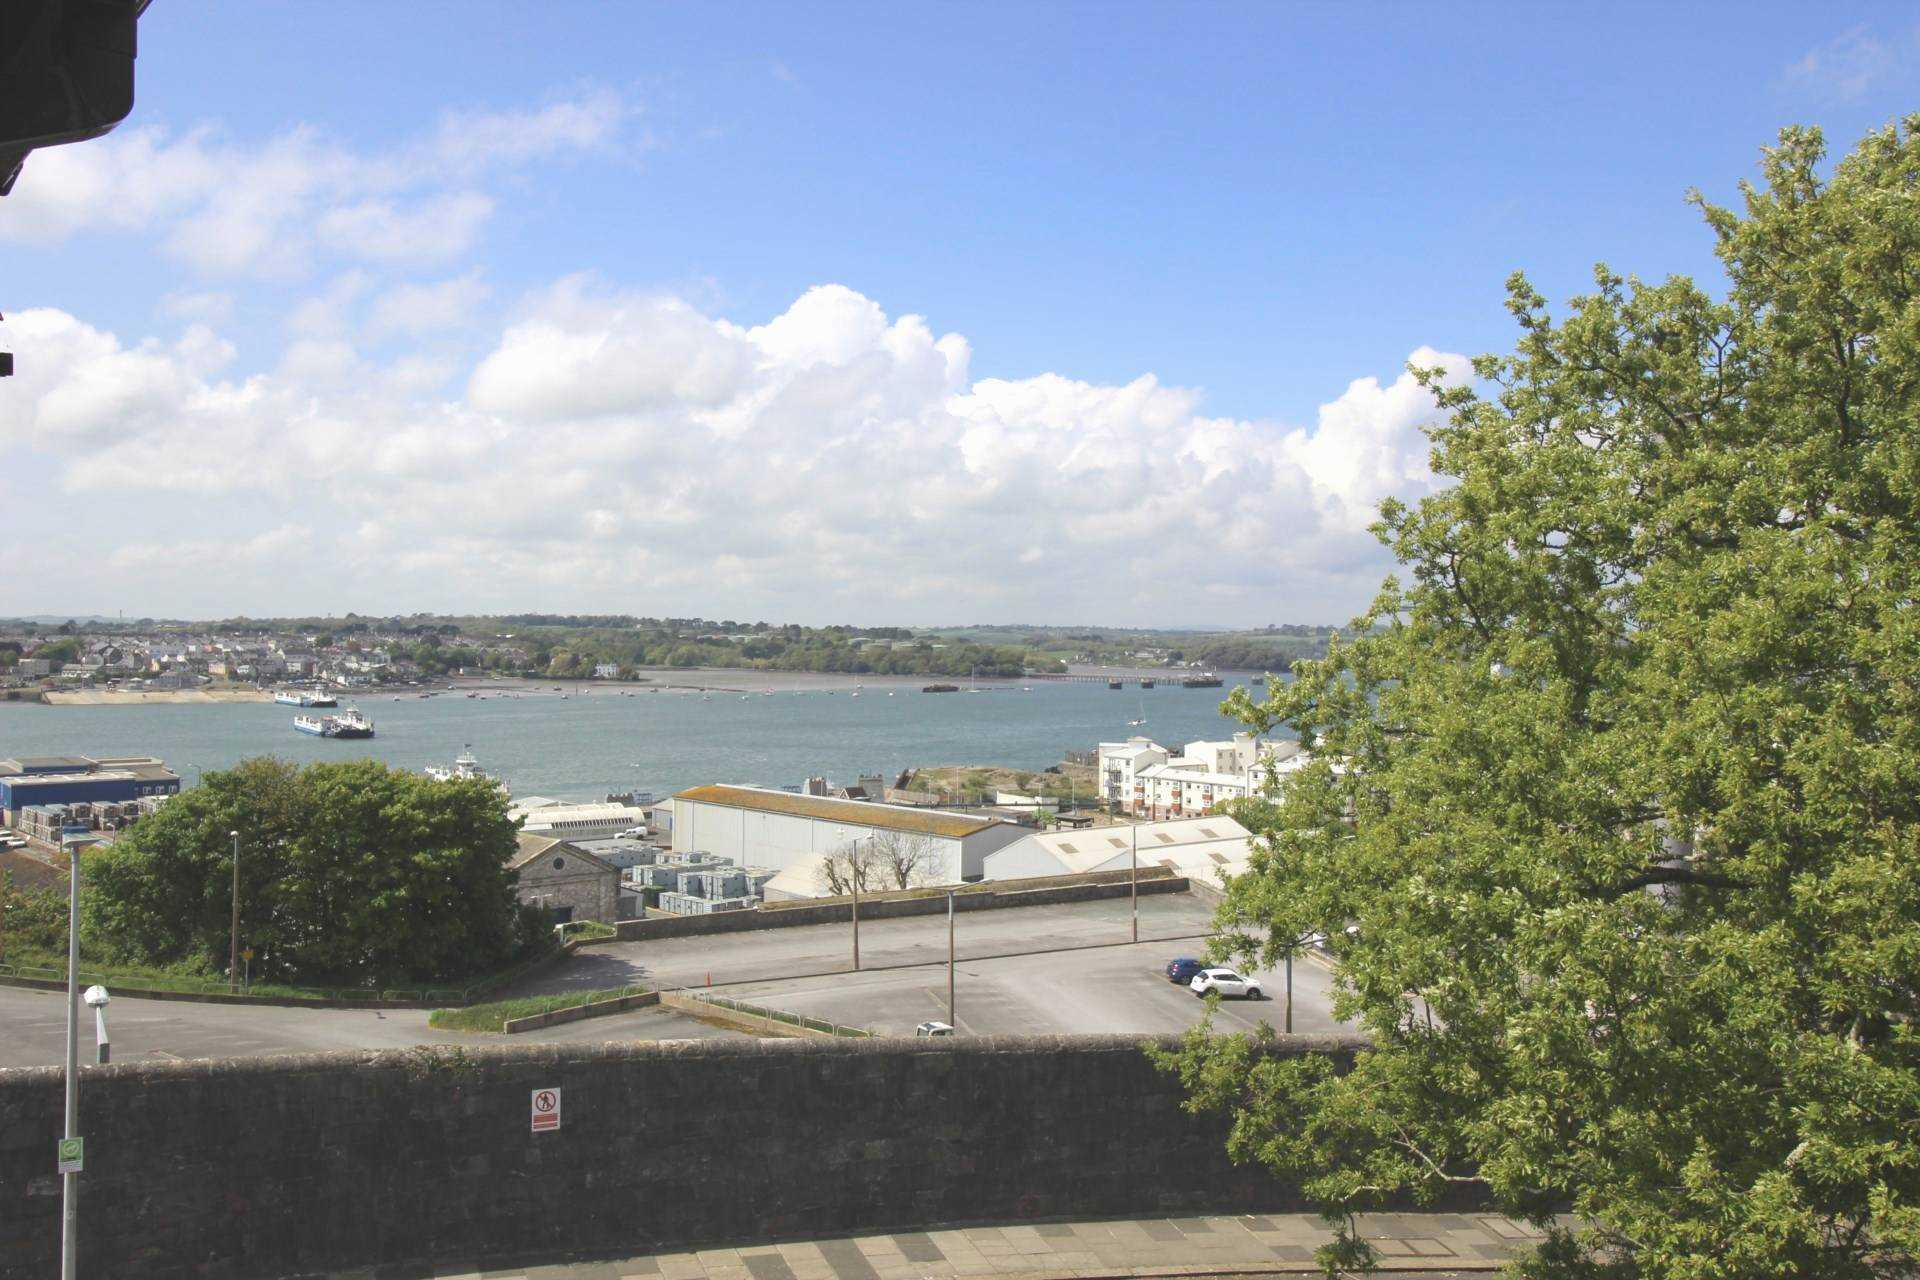 1 Bedroom Flat To Rent Wright Close Plymouth Pl1 4ss